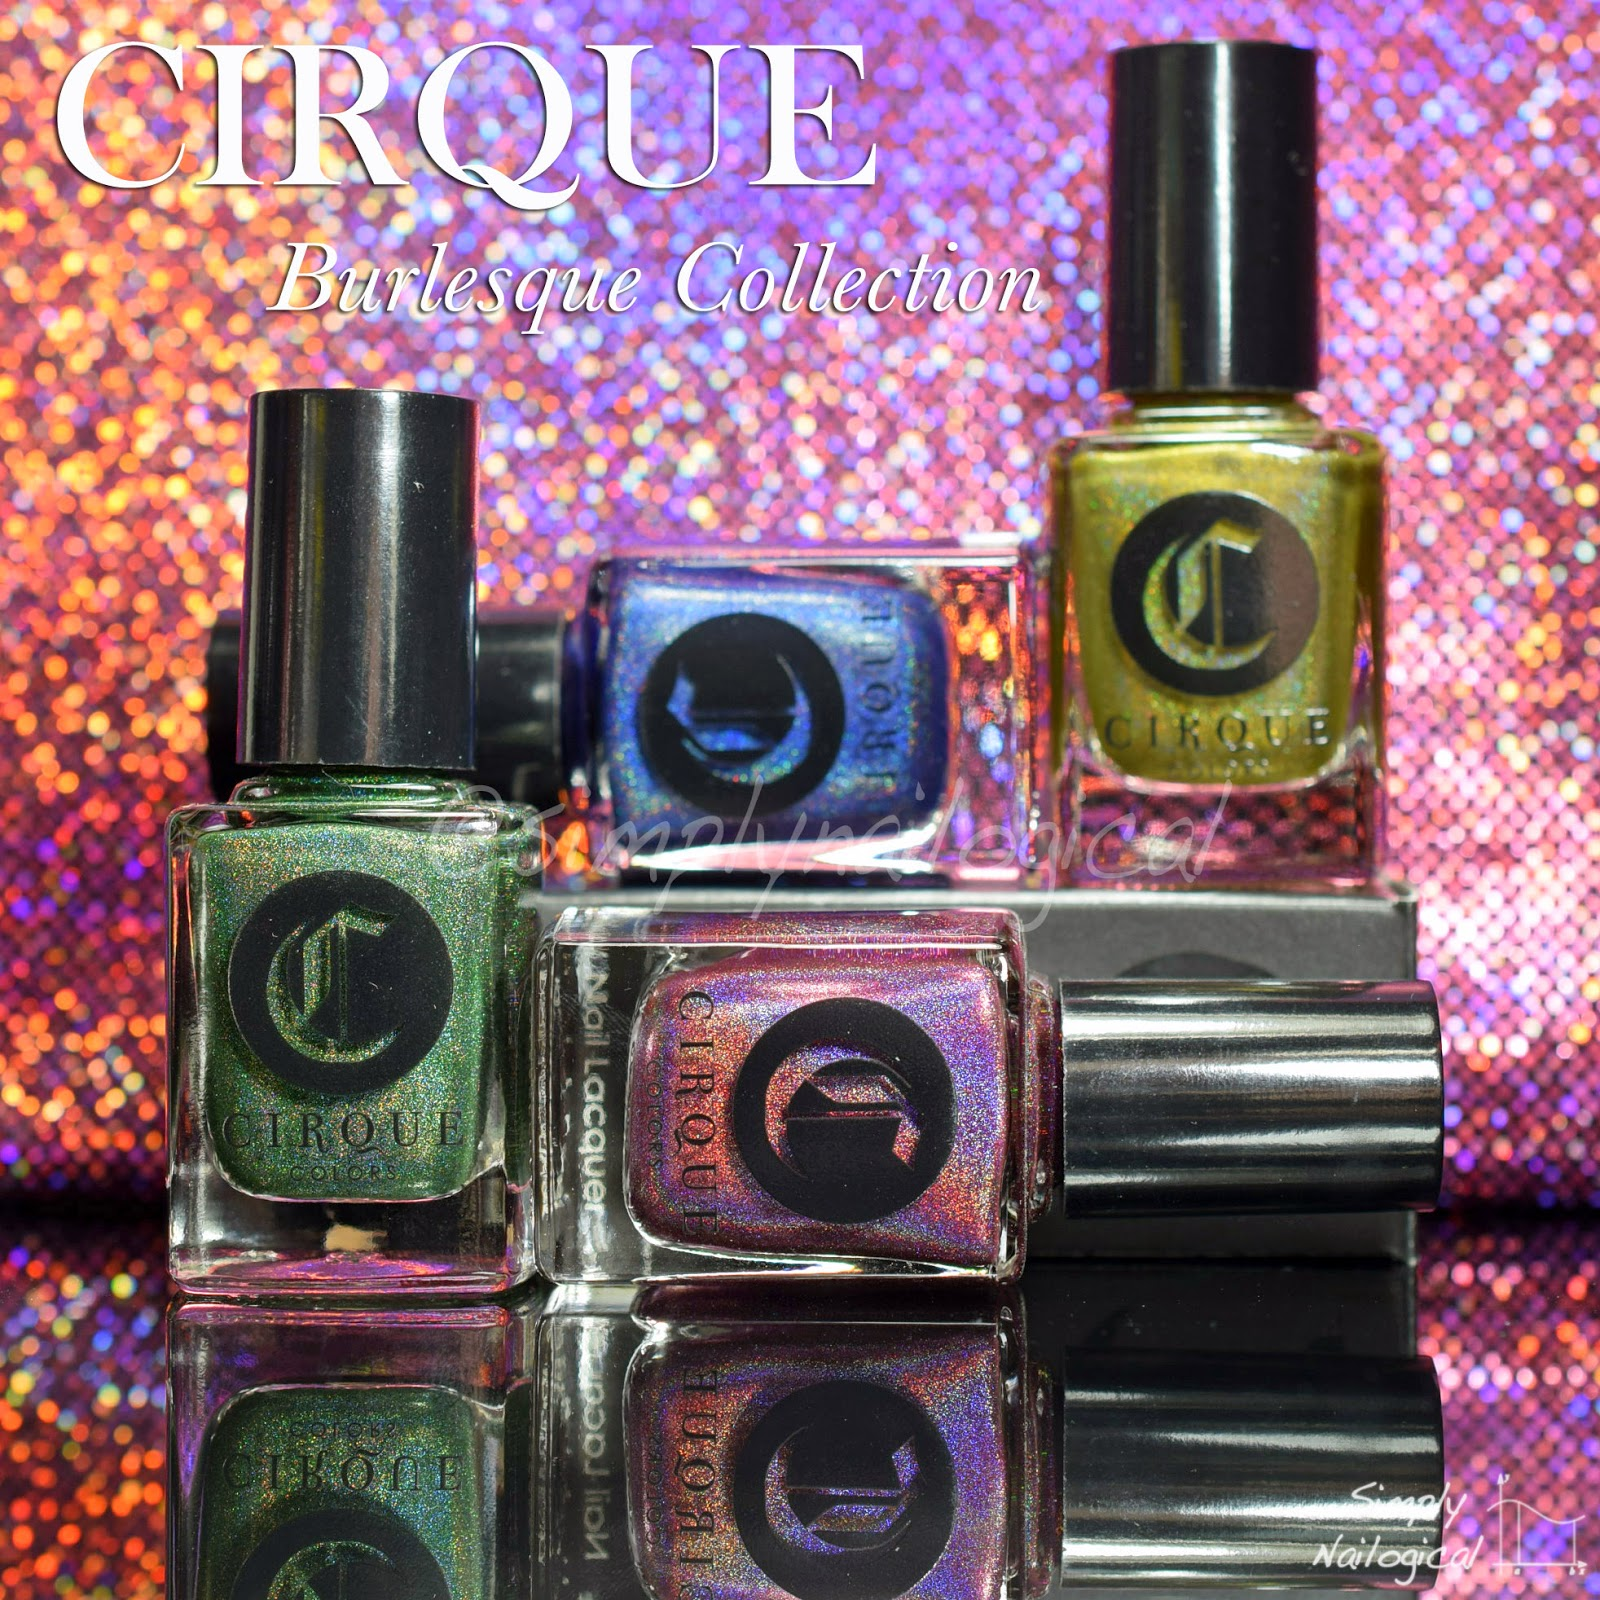 Cirque Burlesque collection